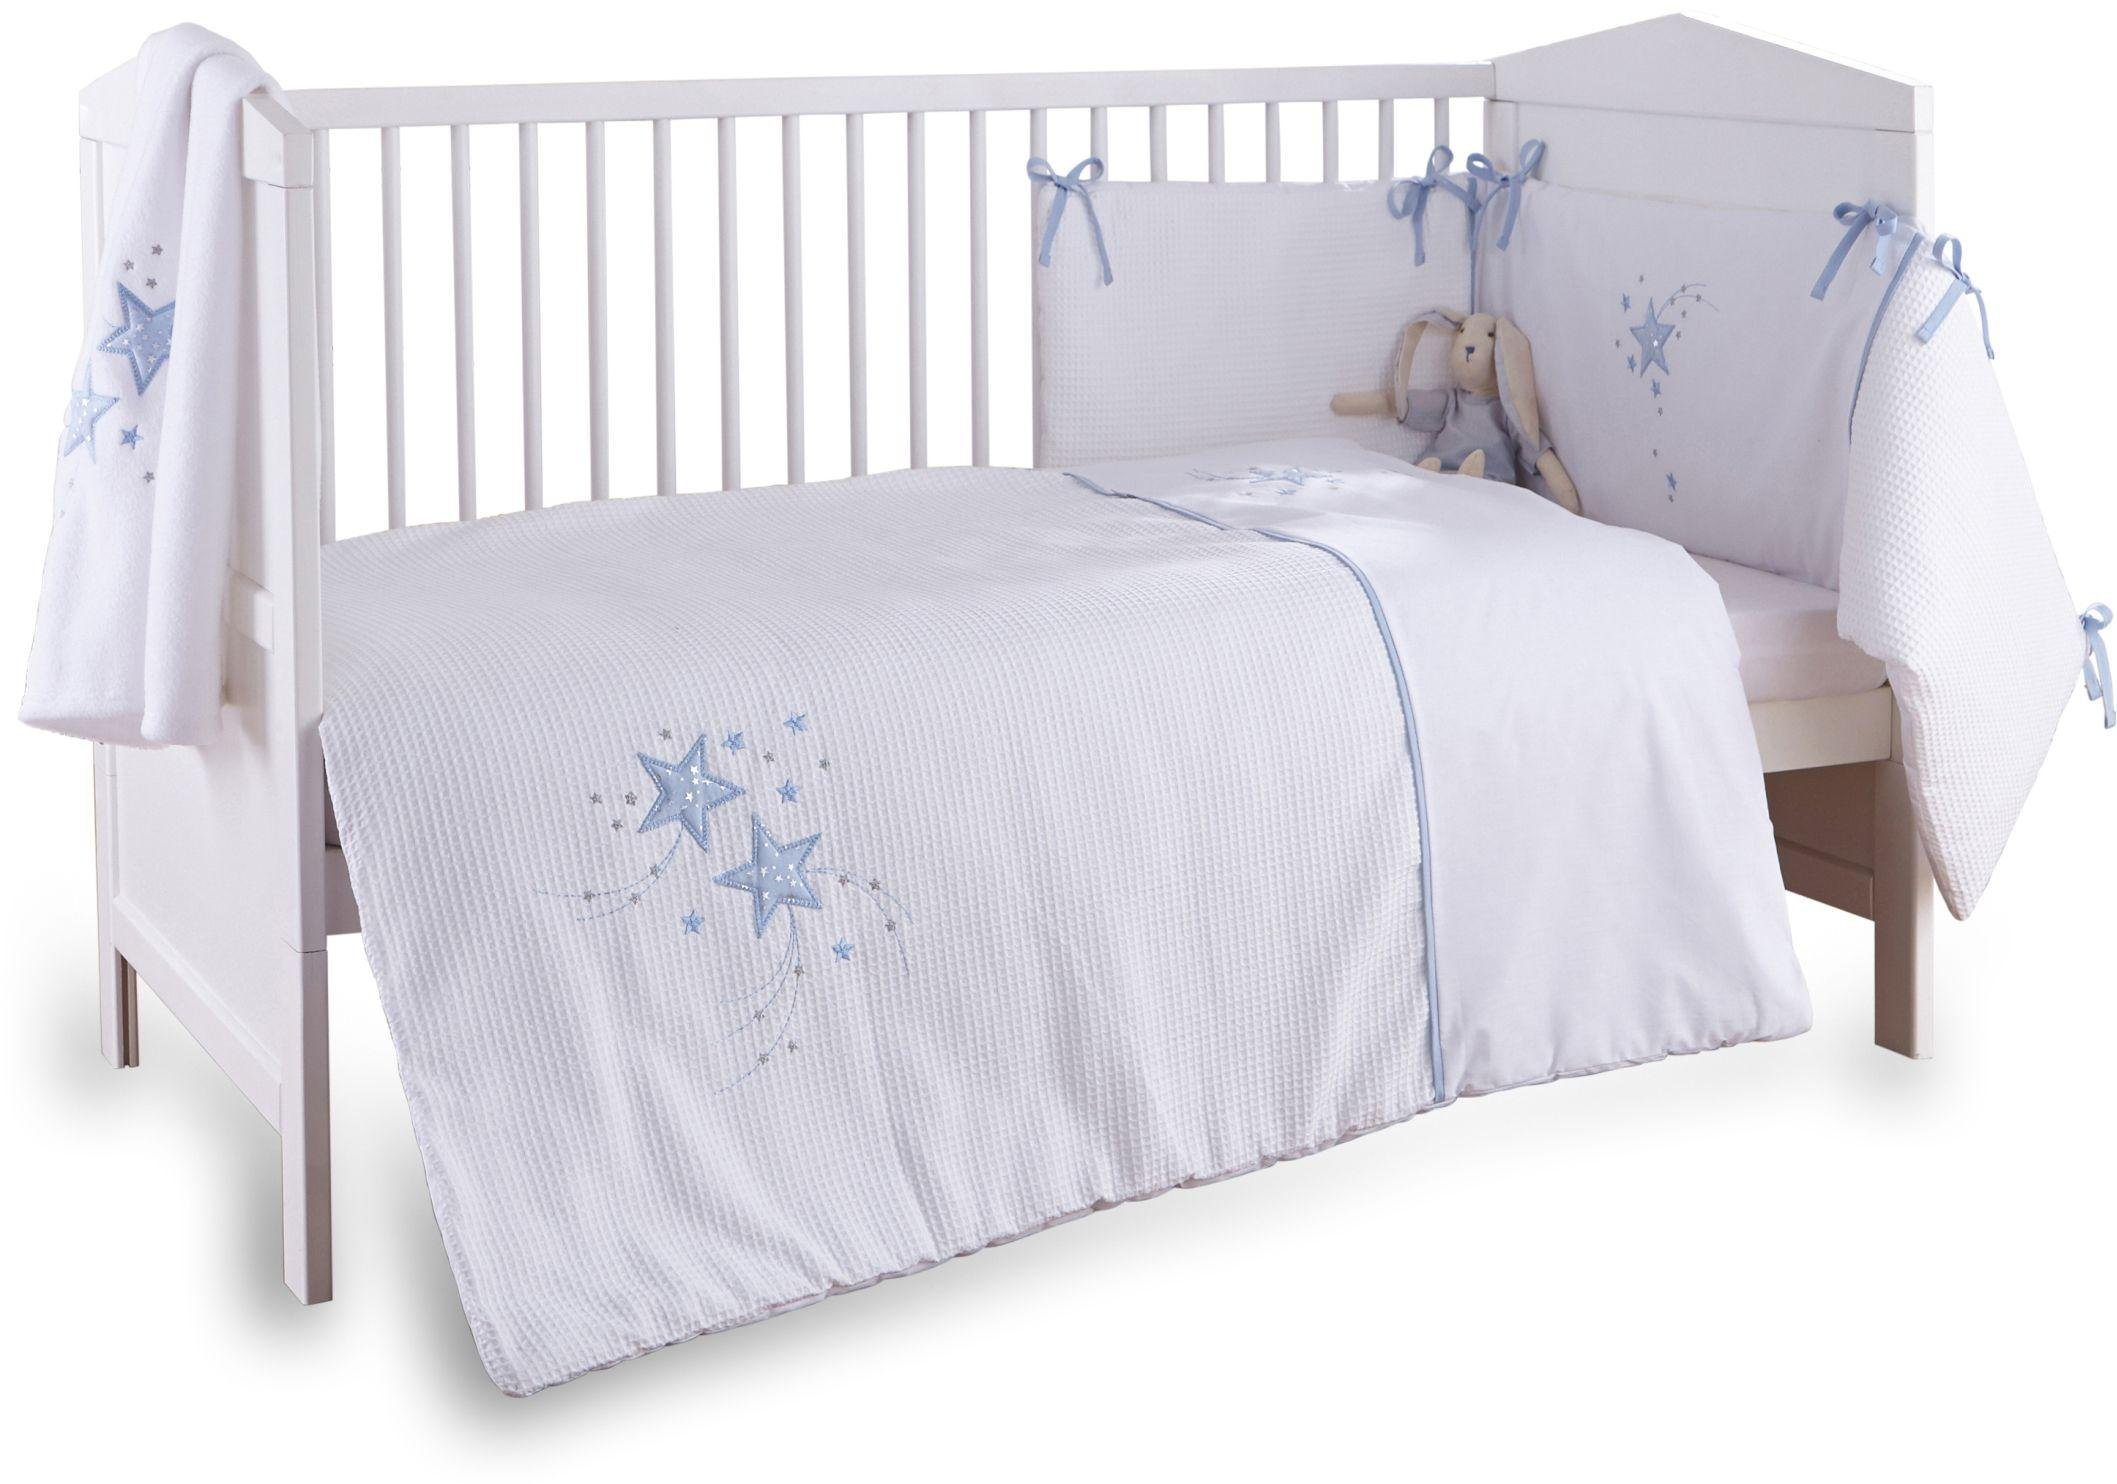 clair-de-lune-stardust-3-piece-cotcot-bed-set-blue-trim